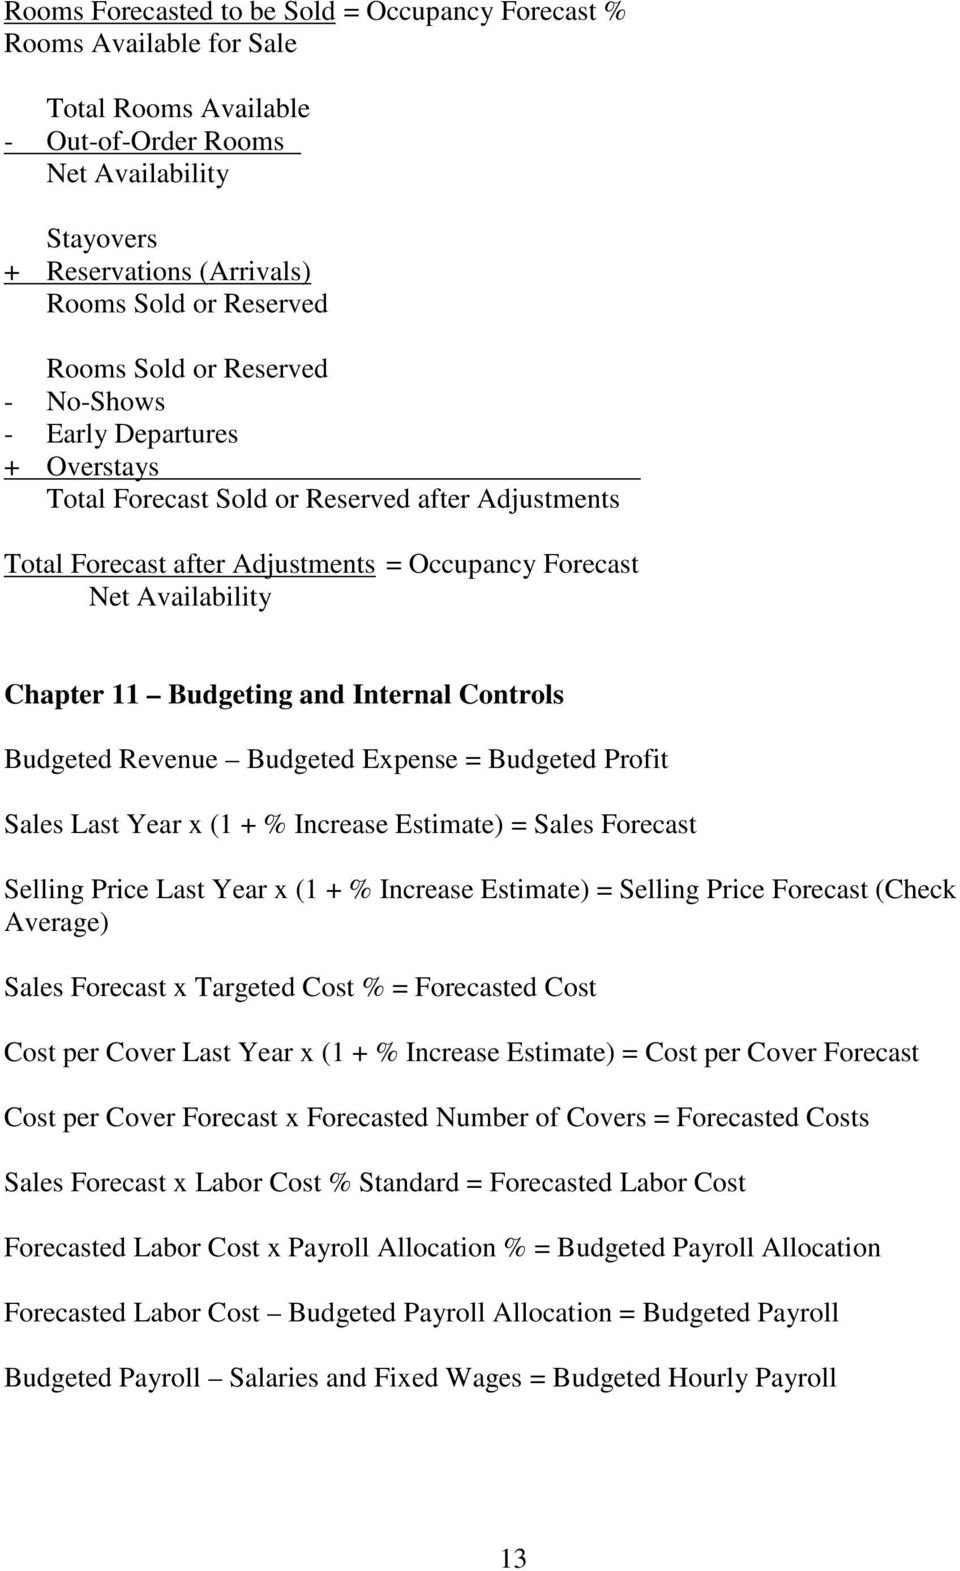 Budgeting and Internal Controls Budgeted Revenue Budgeted Expense = Budgeted Profit Sales Last Year x (1 + % Increase Estimate) = Sales Forecast Selling Price Last Year x (1 + % Increase Estimate) =